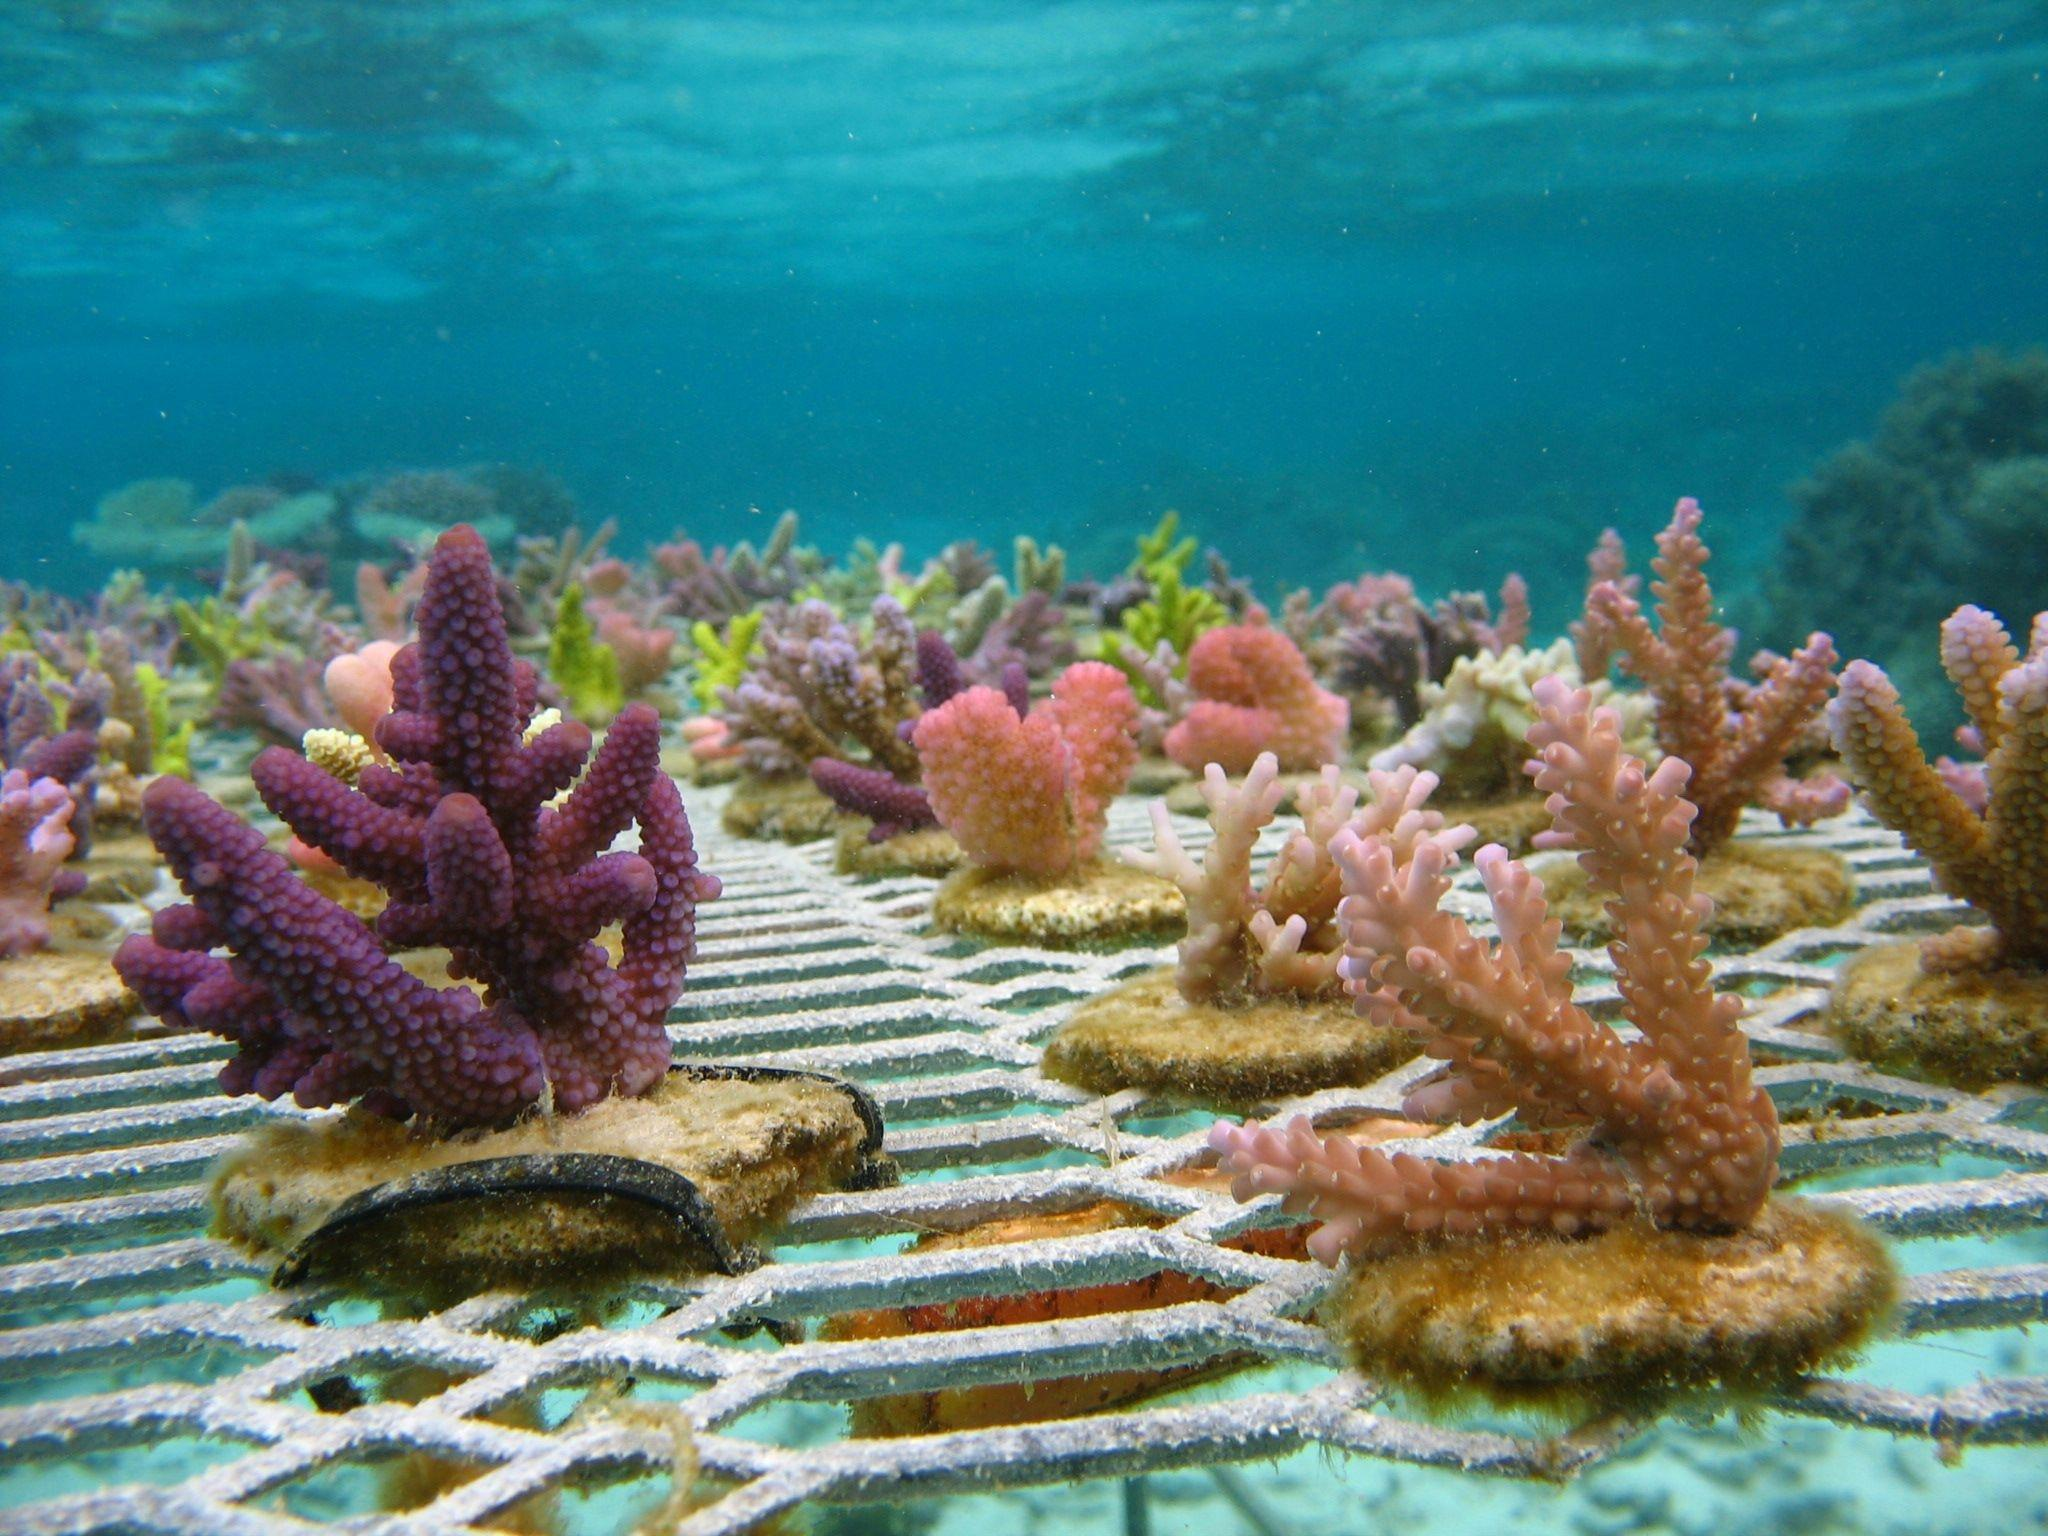 Purple, pink and green corals growing underwater on a metal fence-like substrate. <div class='credit'><strong>Credit:</strong> Purple, pink and green corals growing underwater on a metal fence-like substrate. </div>